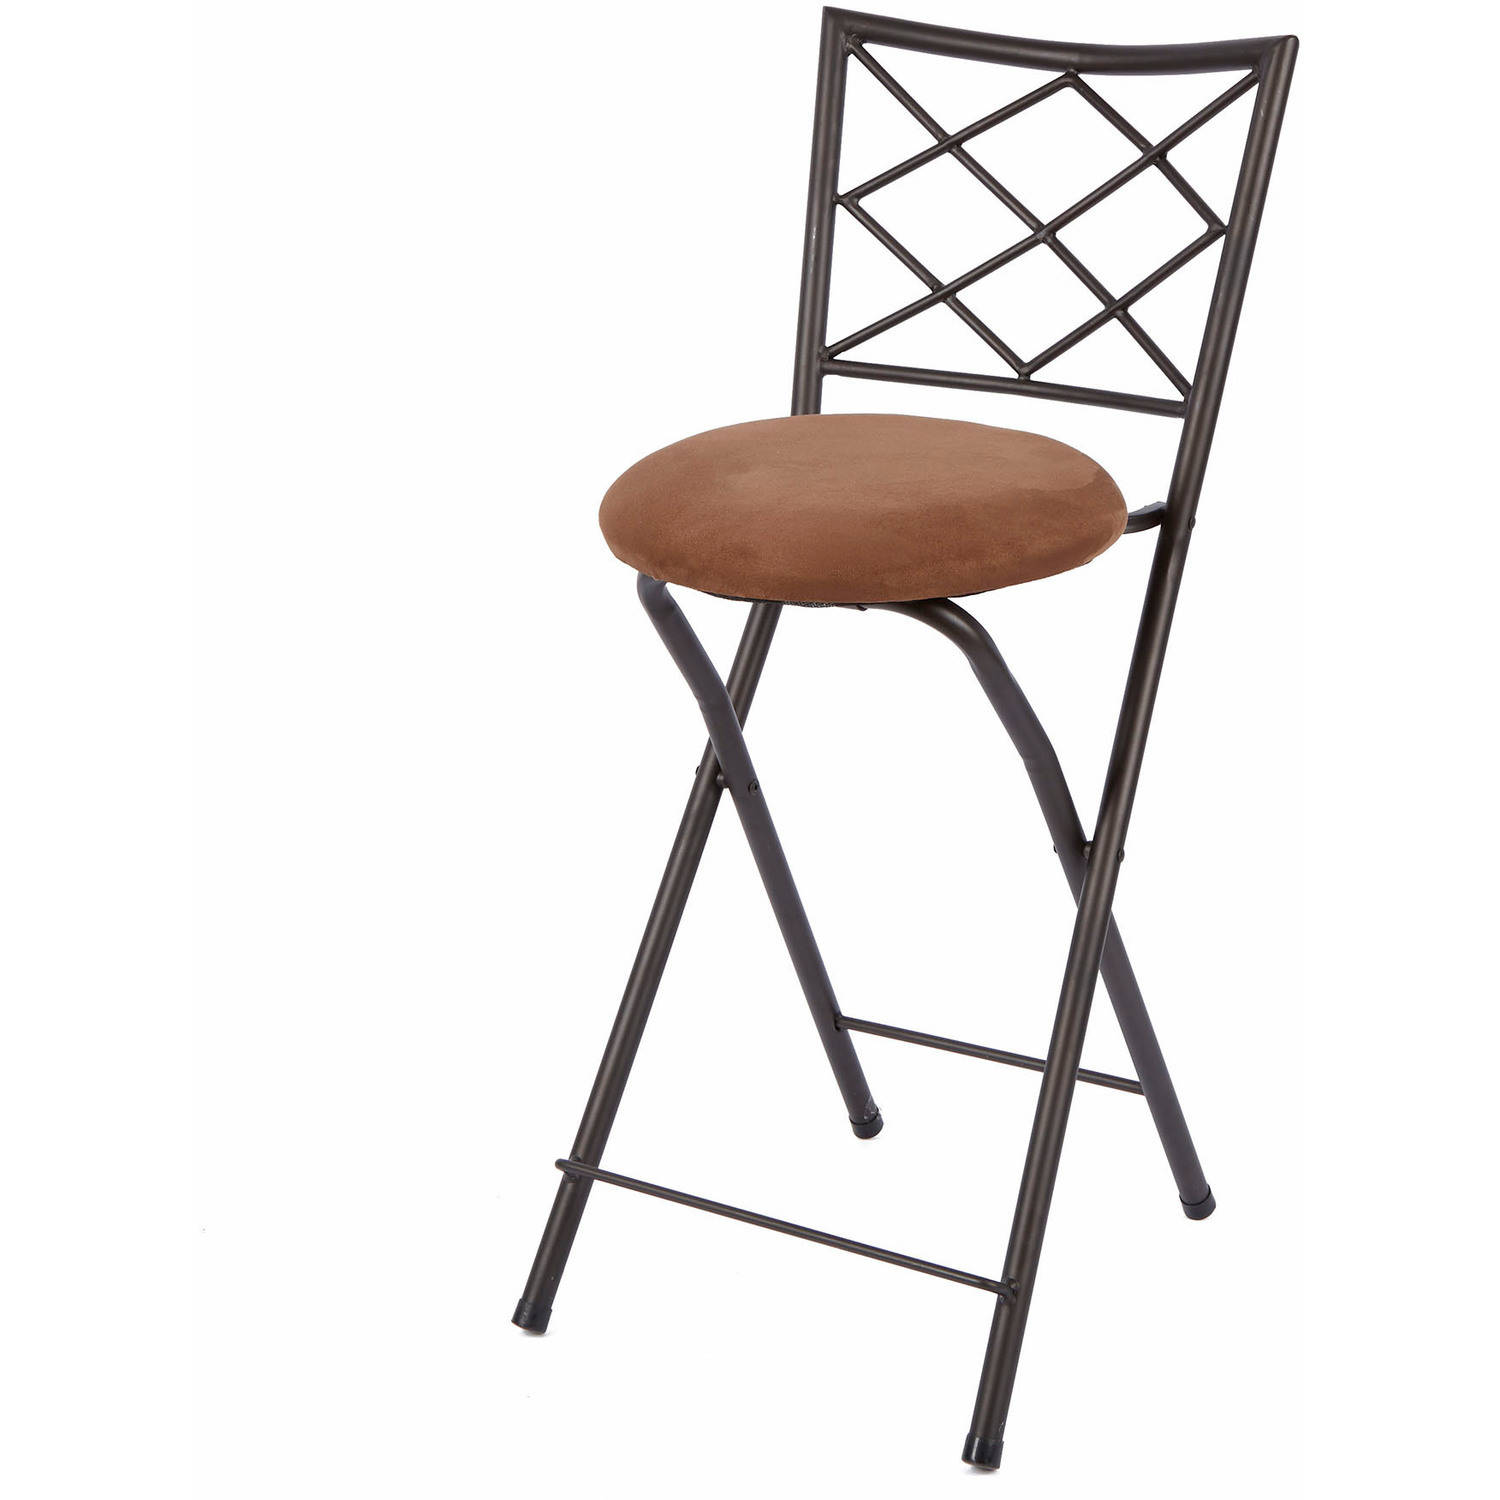 Diamond X Back Folding 24 Inch Counter Height Stool Bronze, Multiple Colors